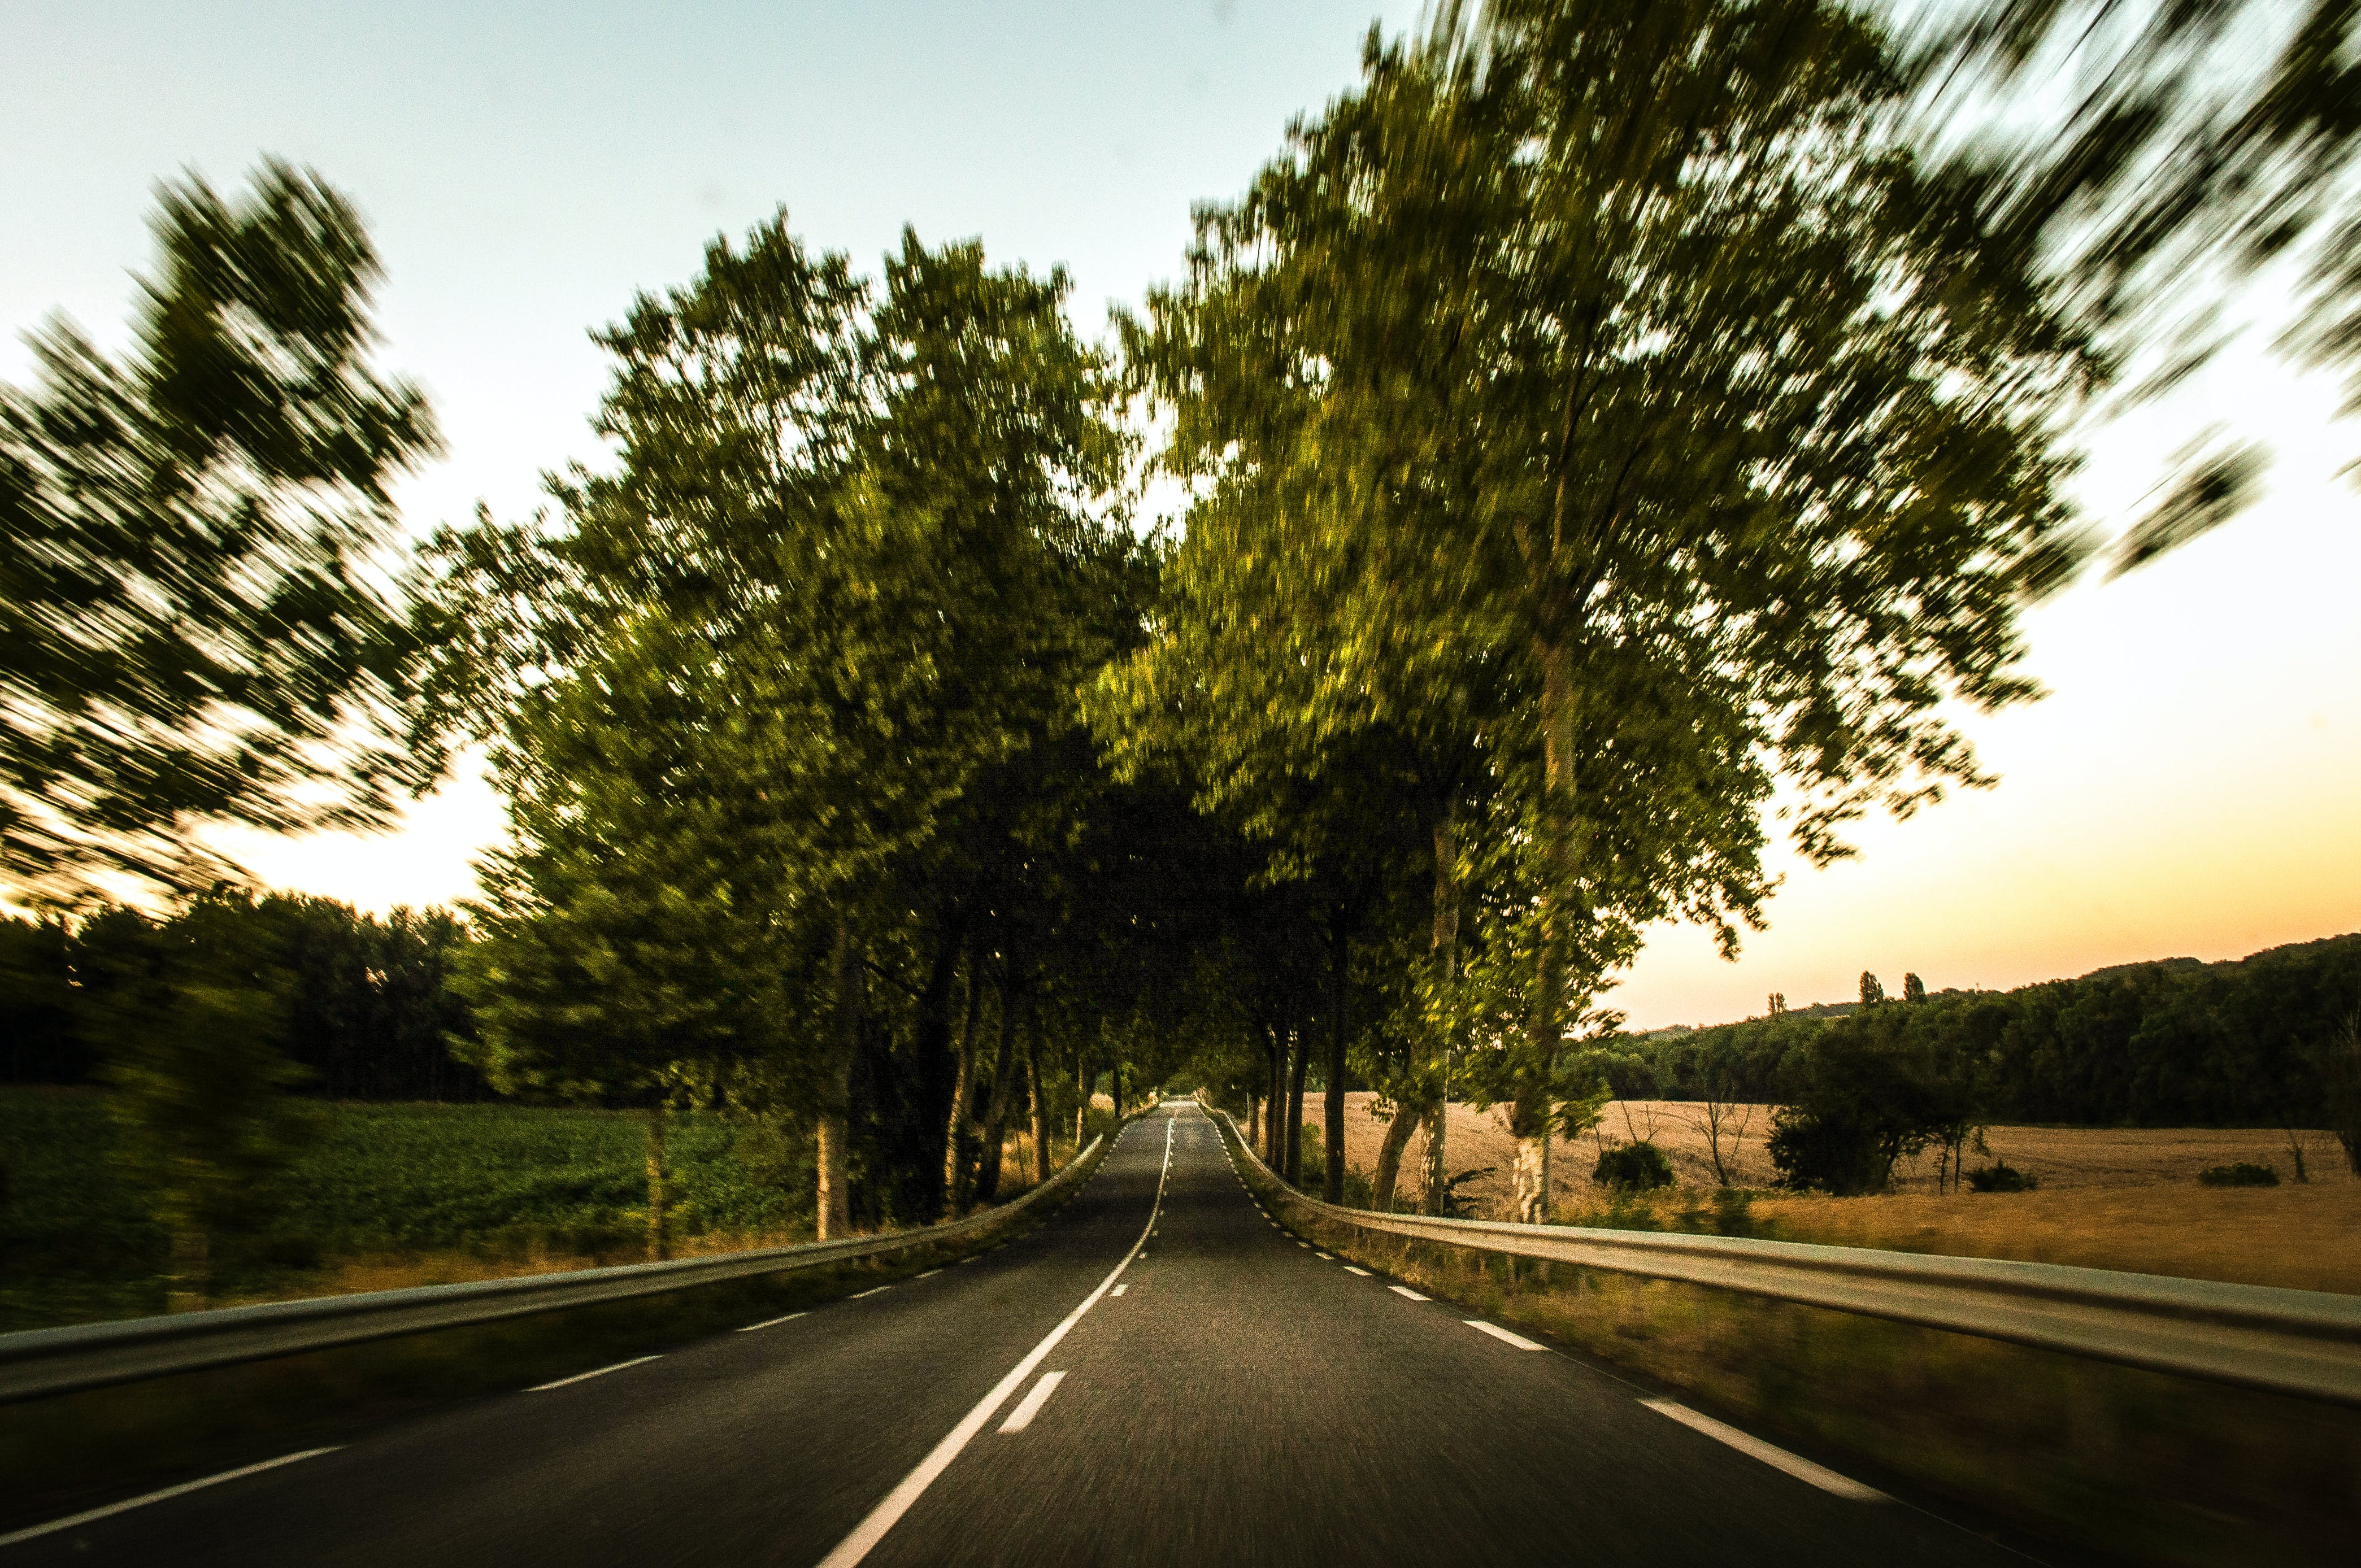 avenue, driving, fast